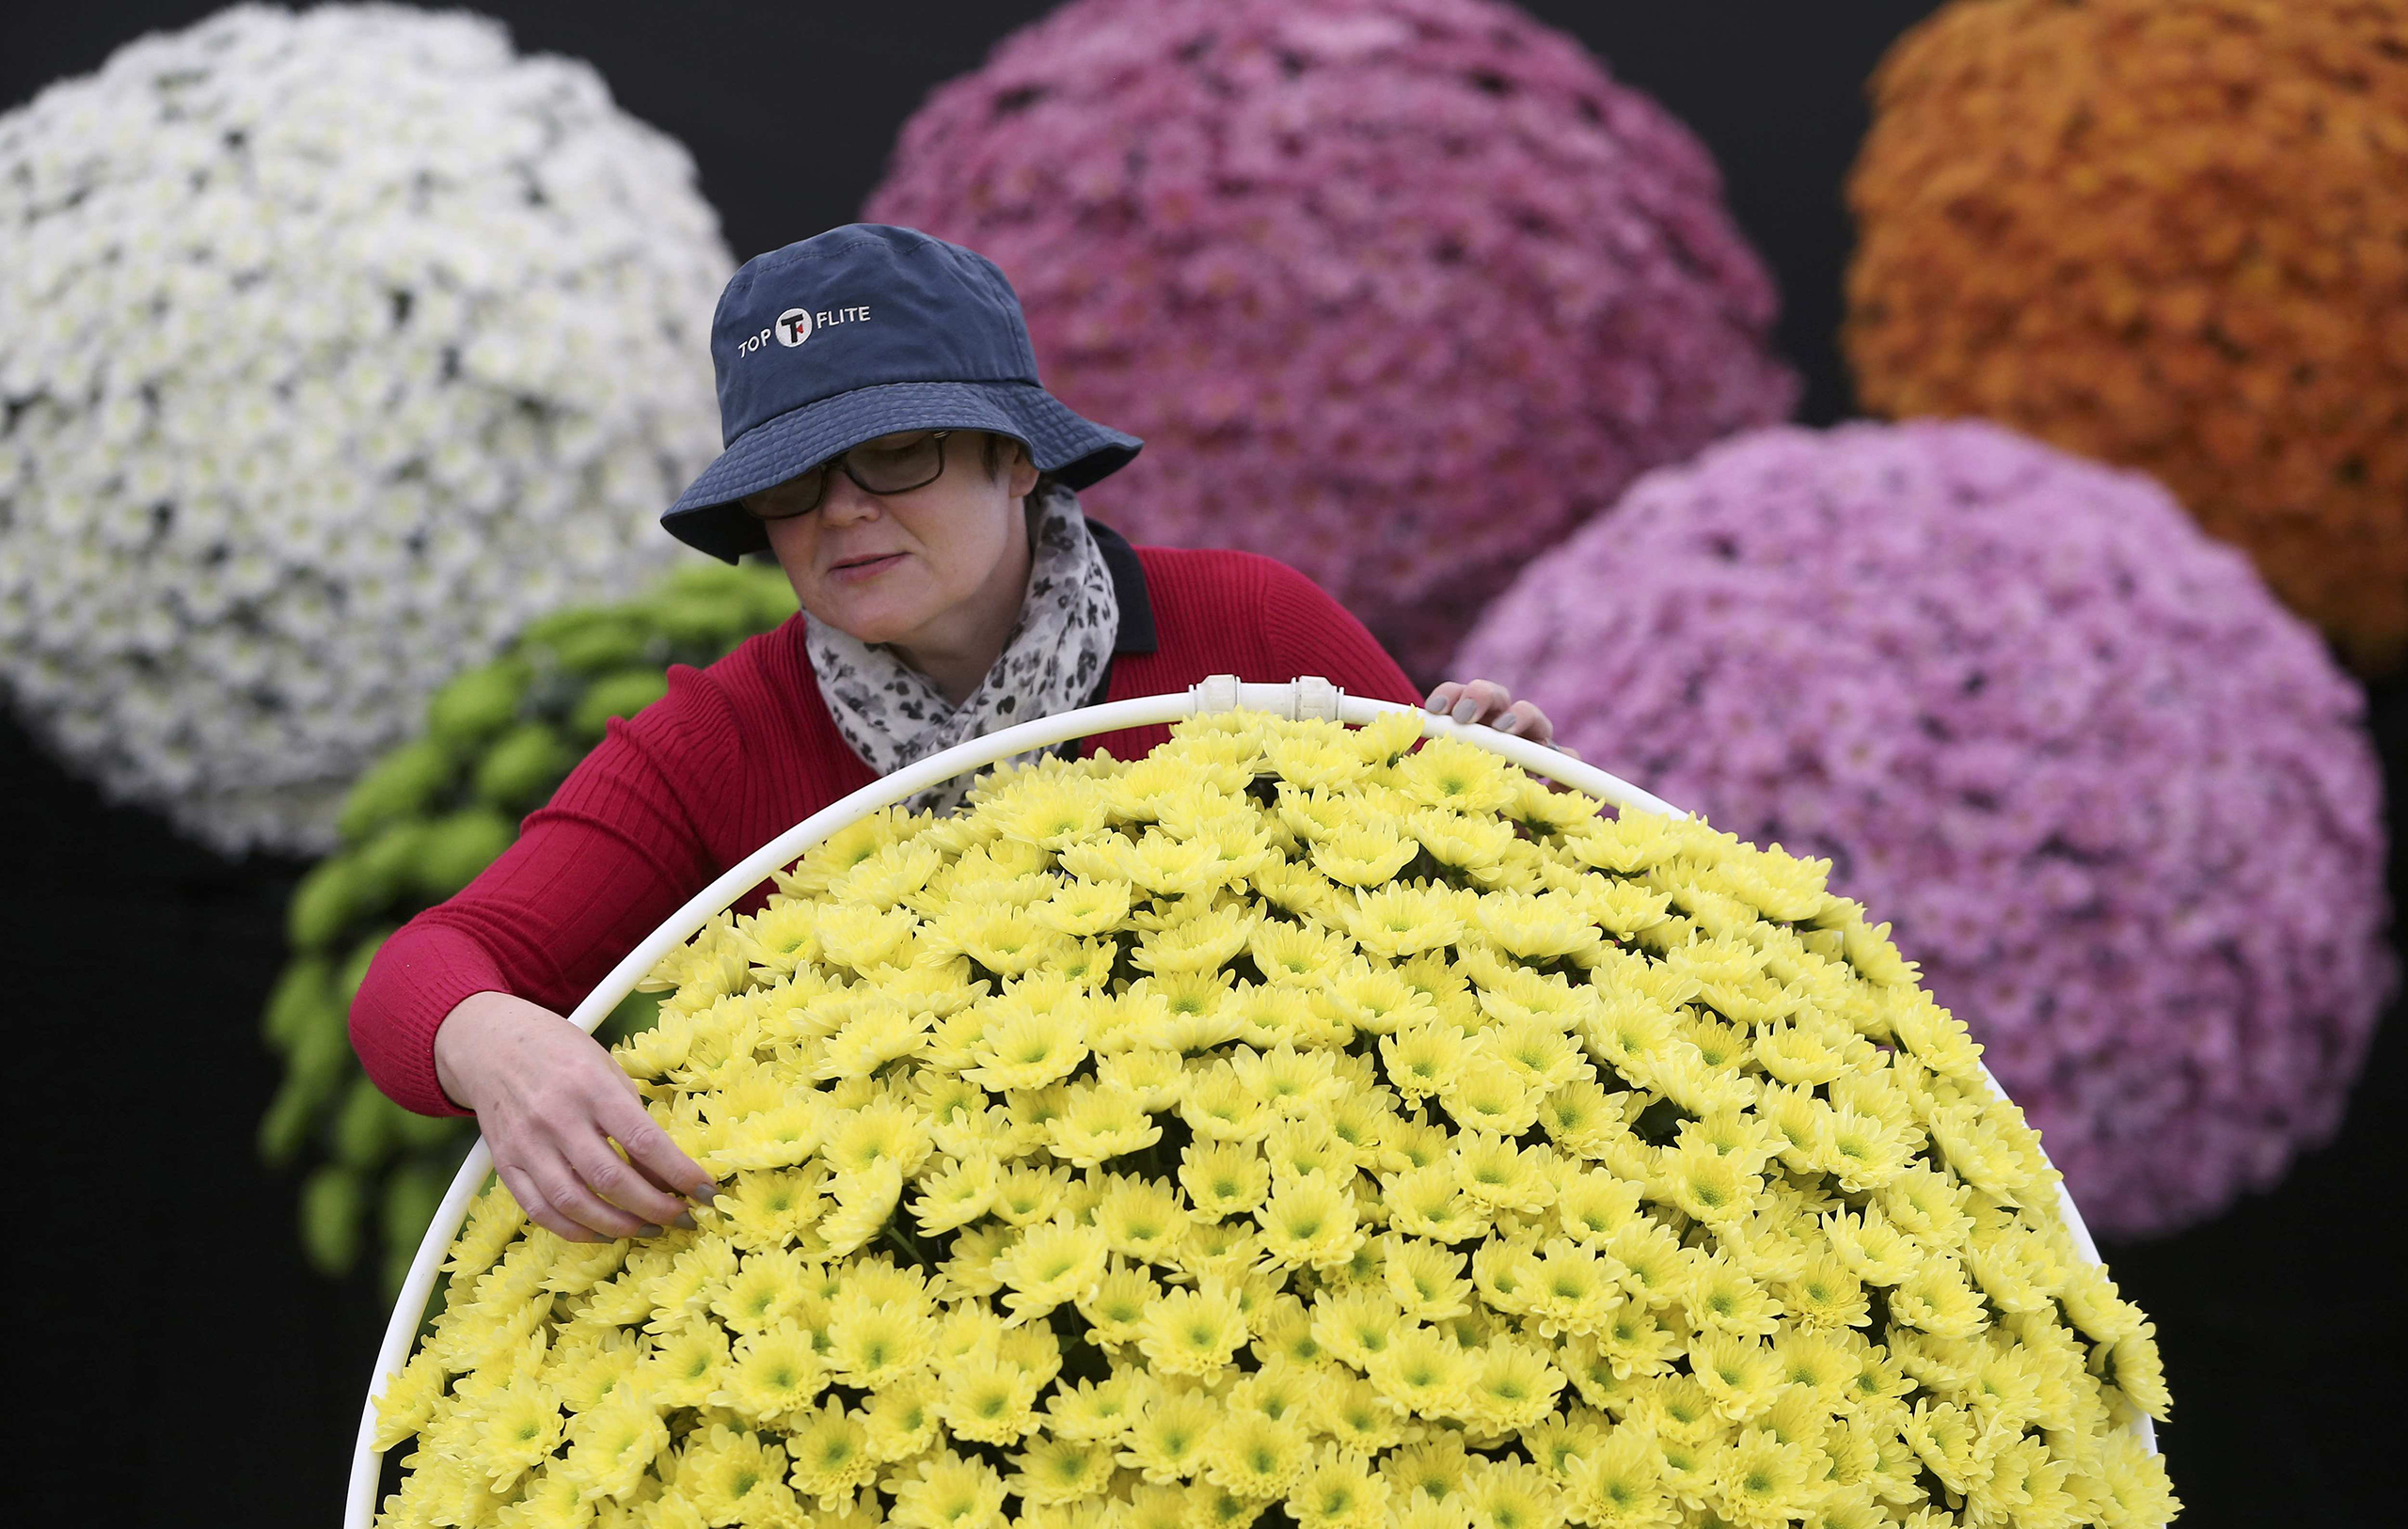 A woman adjusts display of chrysanthemums during preparations for the RHS Chelsea Flower Show in London, May 21, 2016.